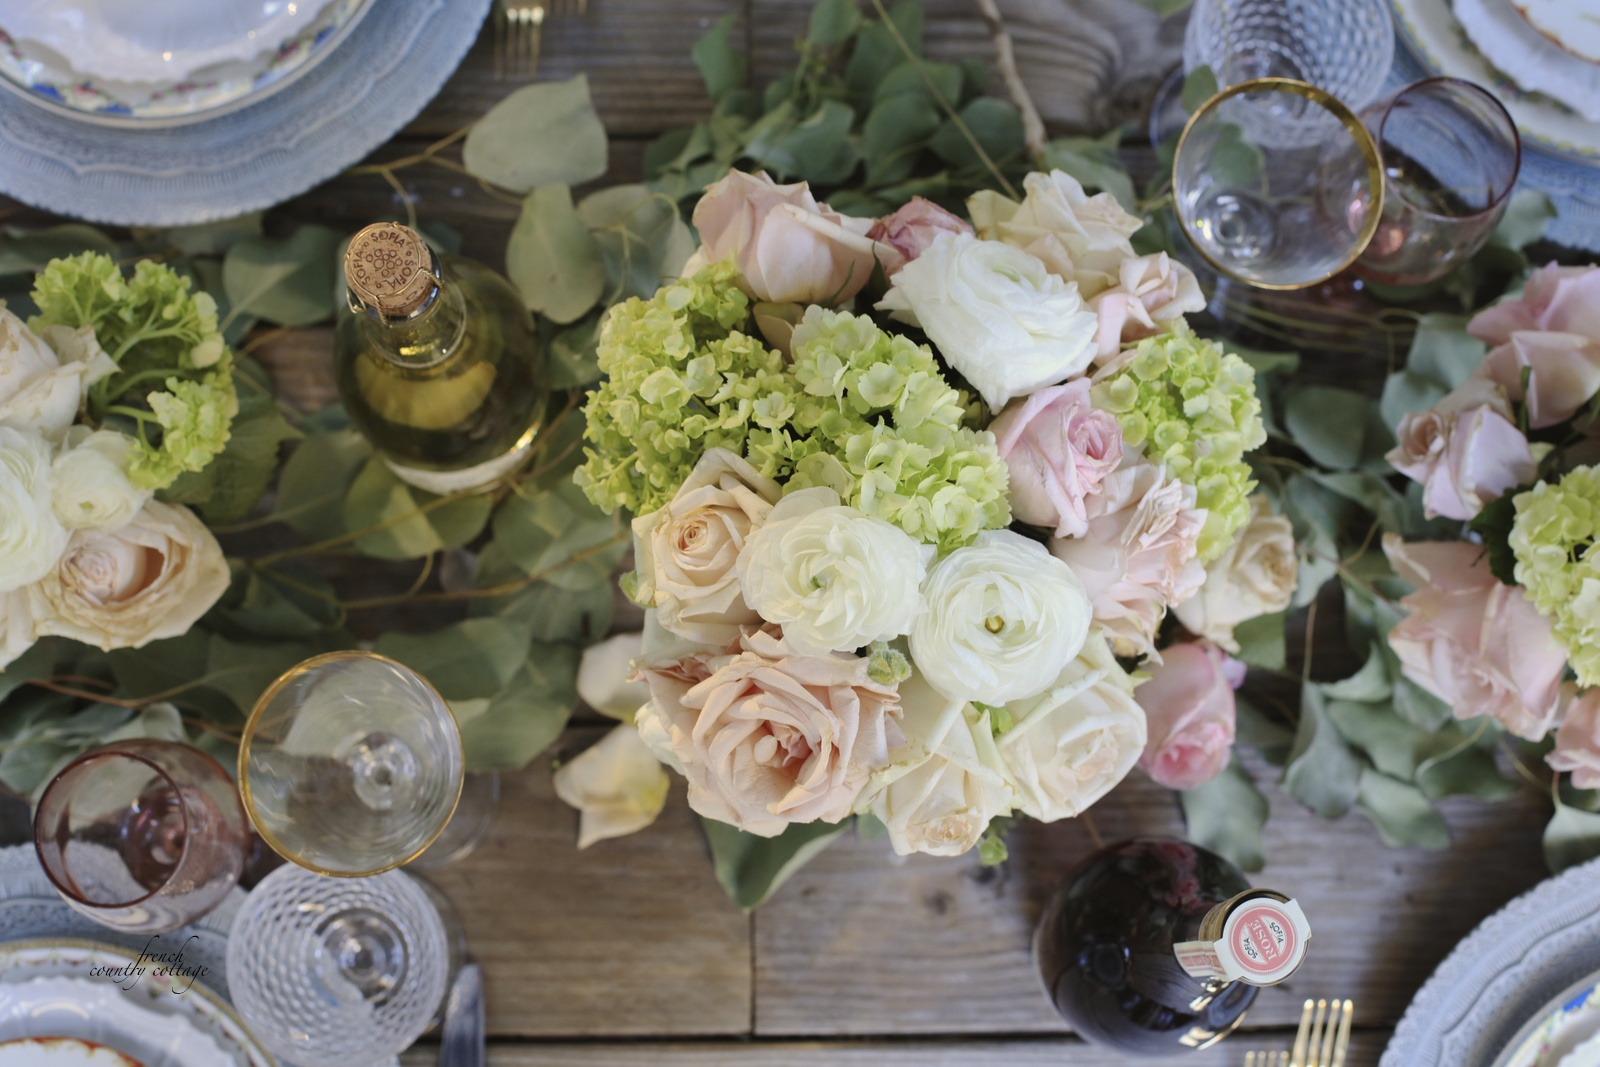 Flowers and place setting elements on rustic tabletop & Mix \u0026 Mingle~ Vintage place settings - FRENCH COUNTRY COTTAGE